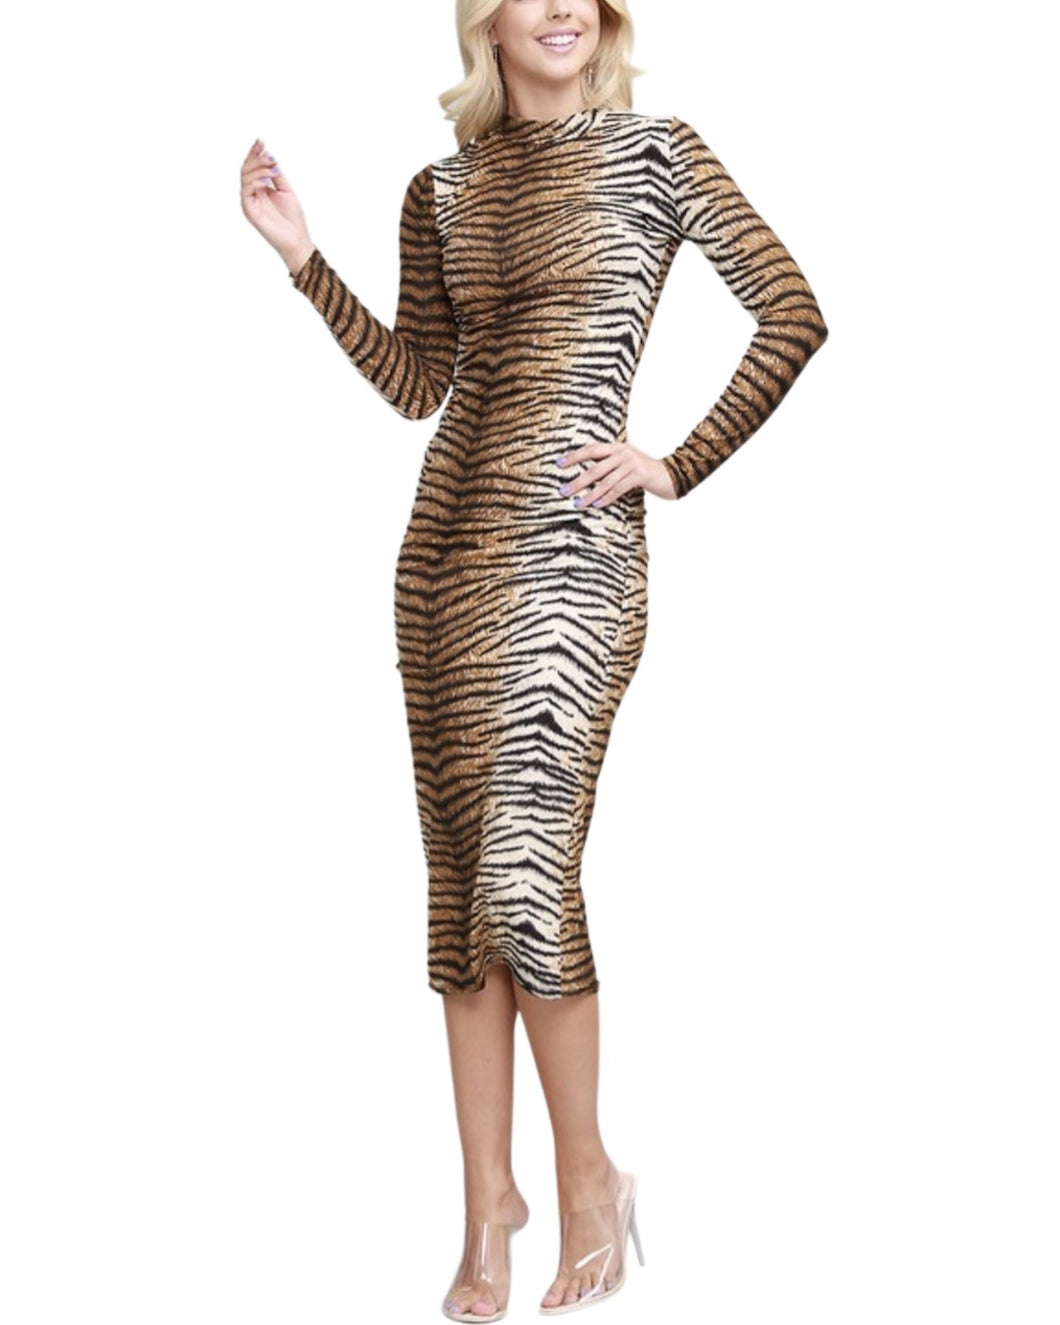 TIGER STRIPE DRESS